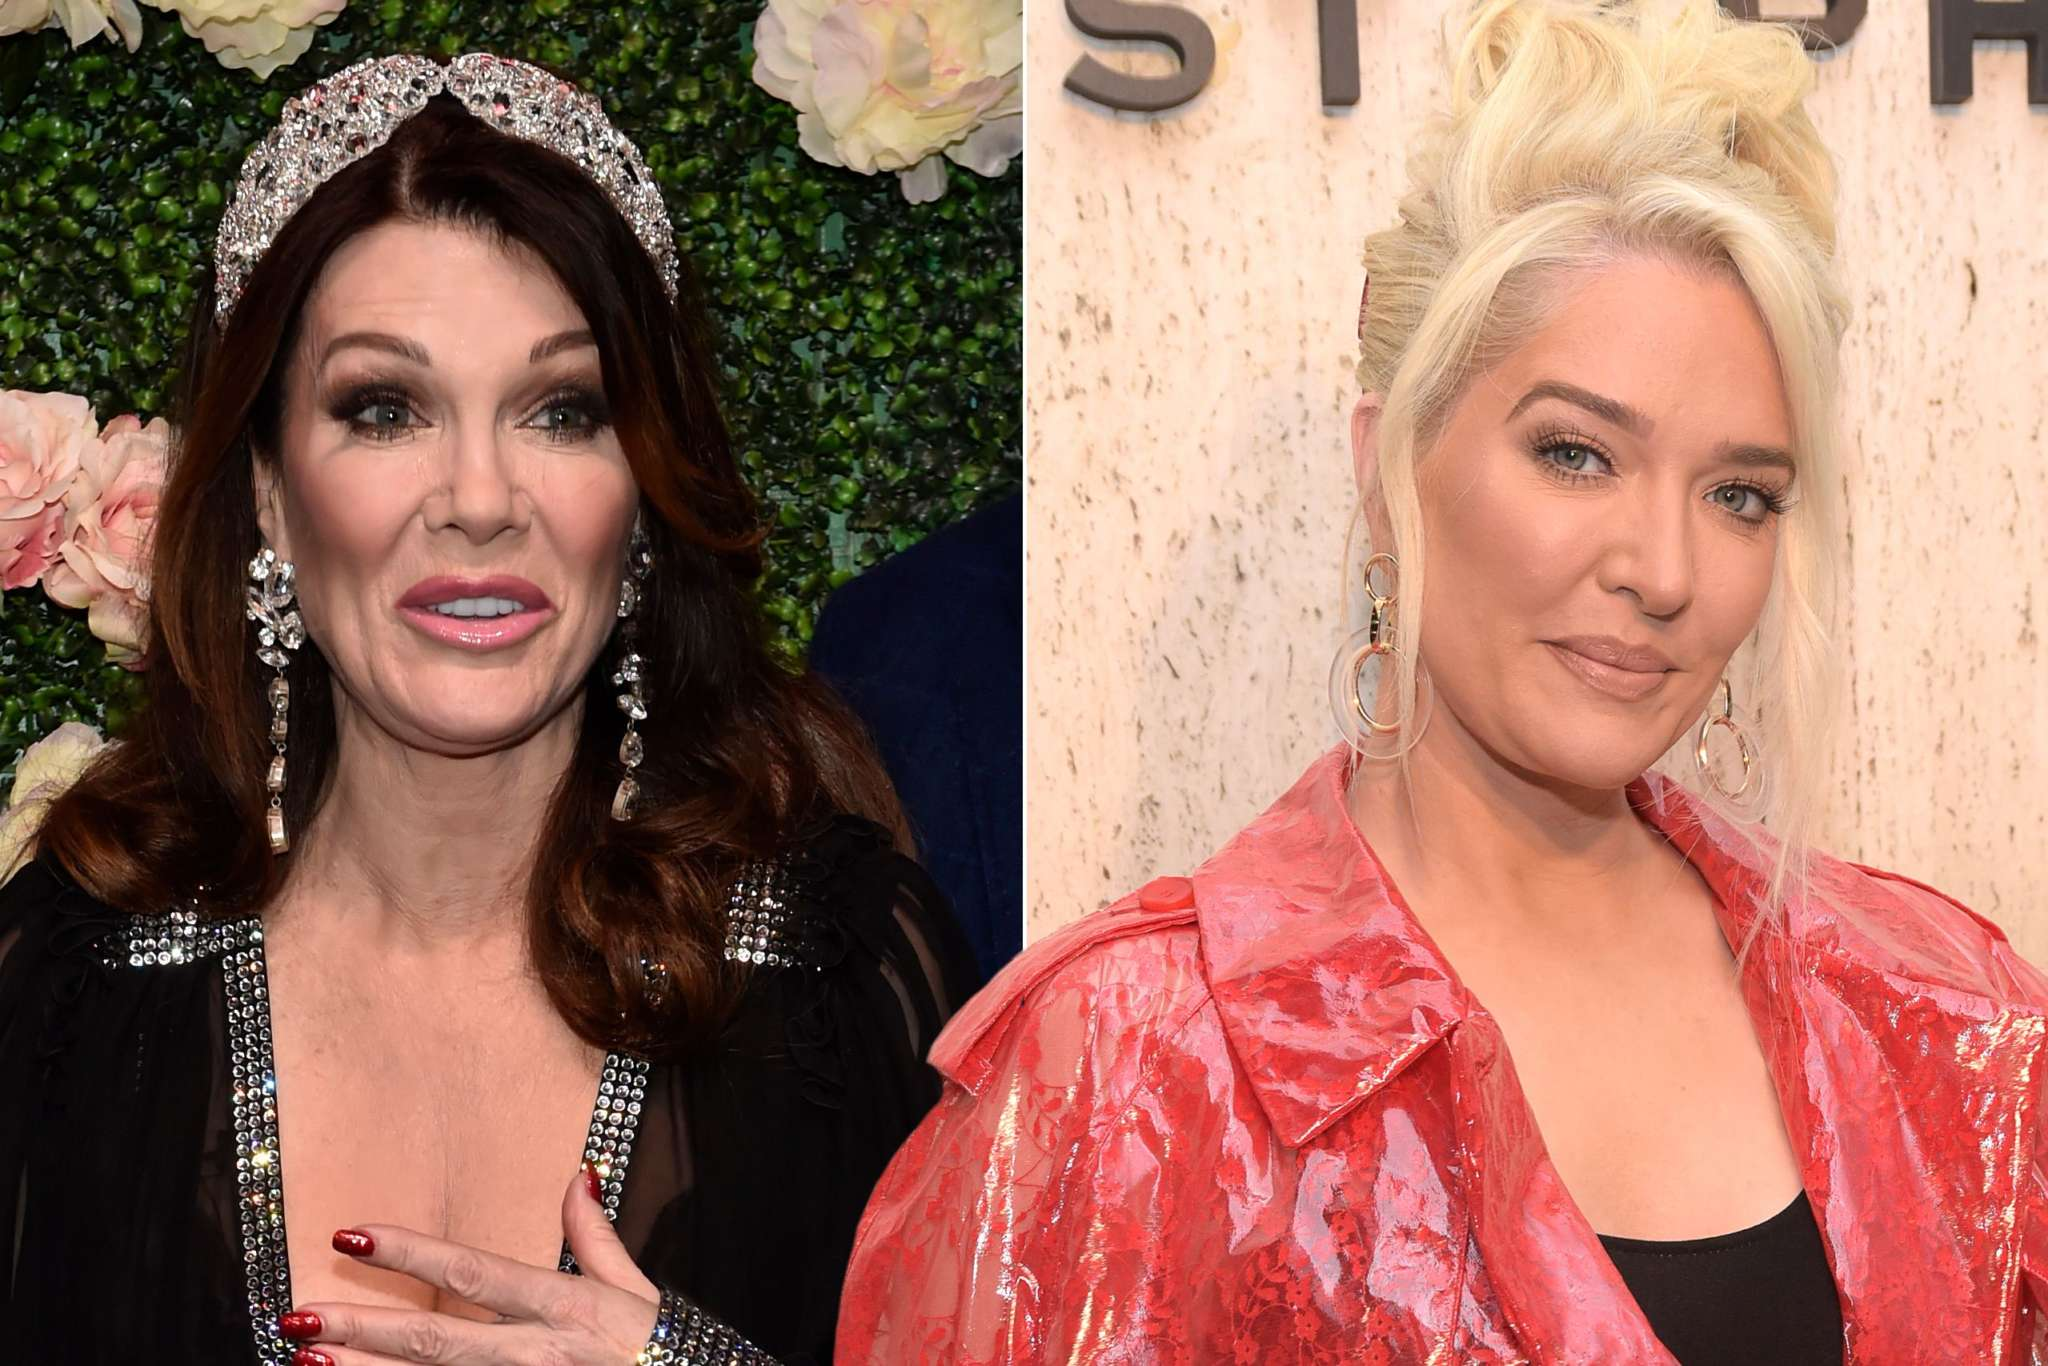 lisa-vanderpump-says-sorry-to-lgbt-community-i-have-nothing-but-respect-and-love-for-trans-people